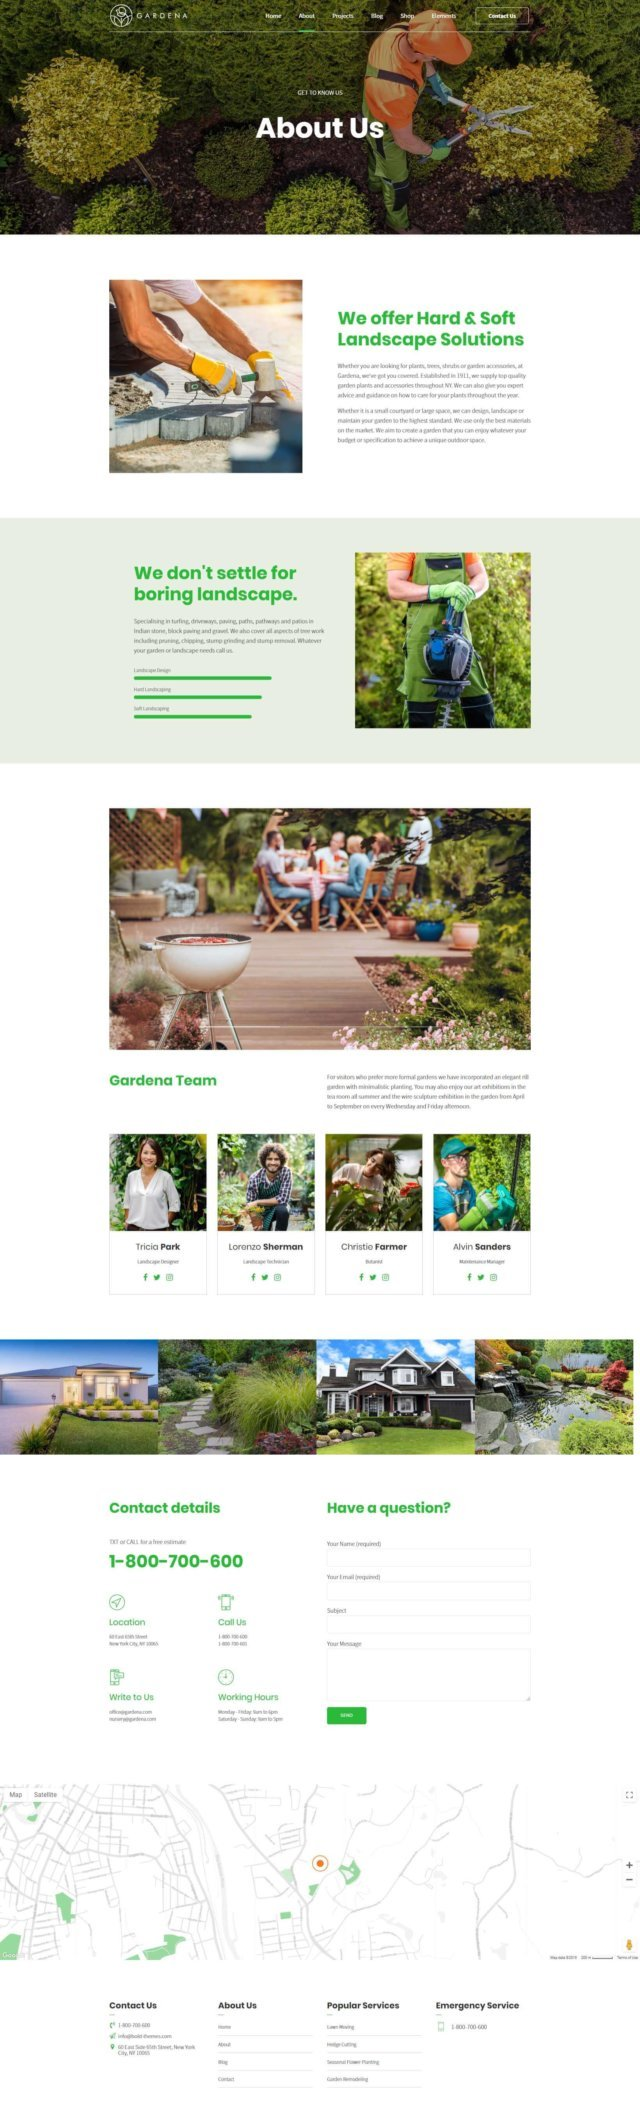 http://gardena.bold-themes.com/wp-content/uploads/2019/10/About-us-640x2118.jpg